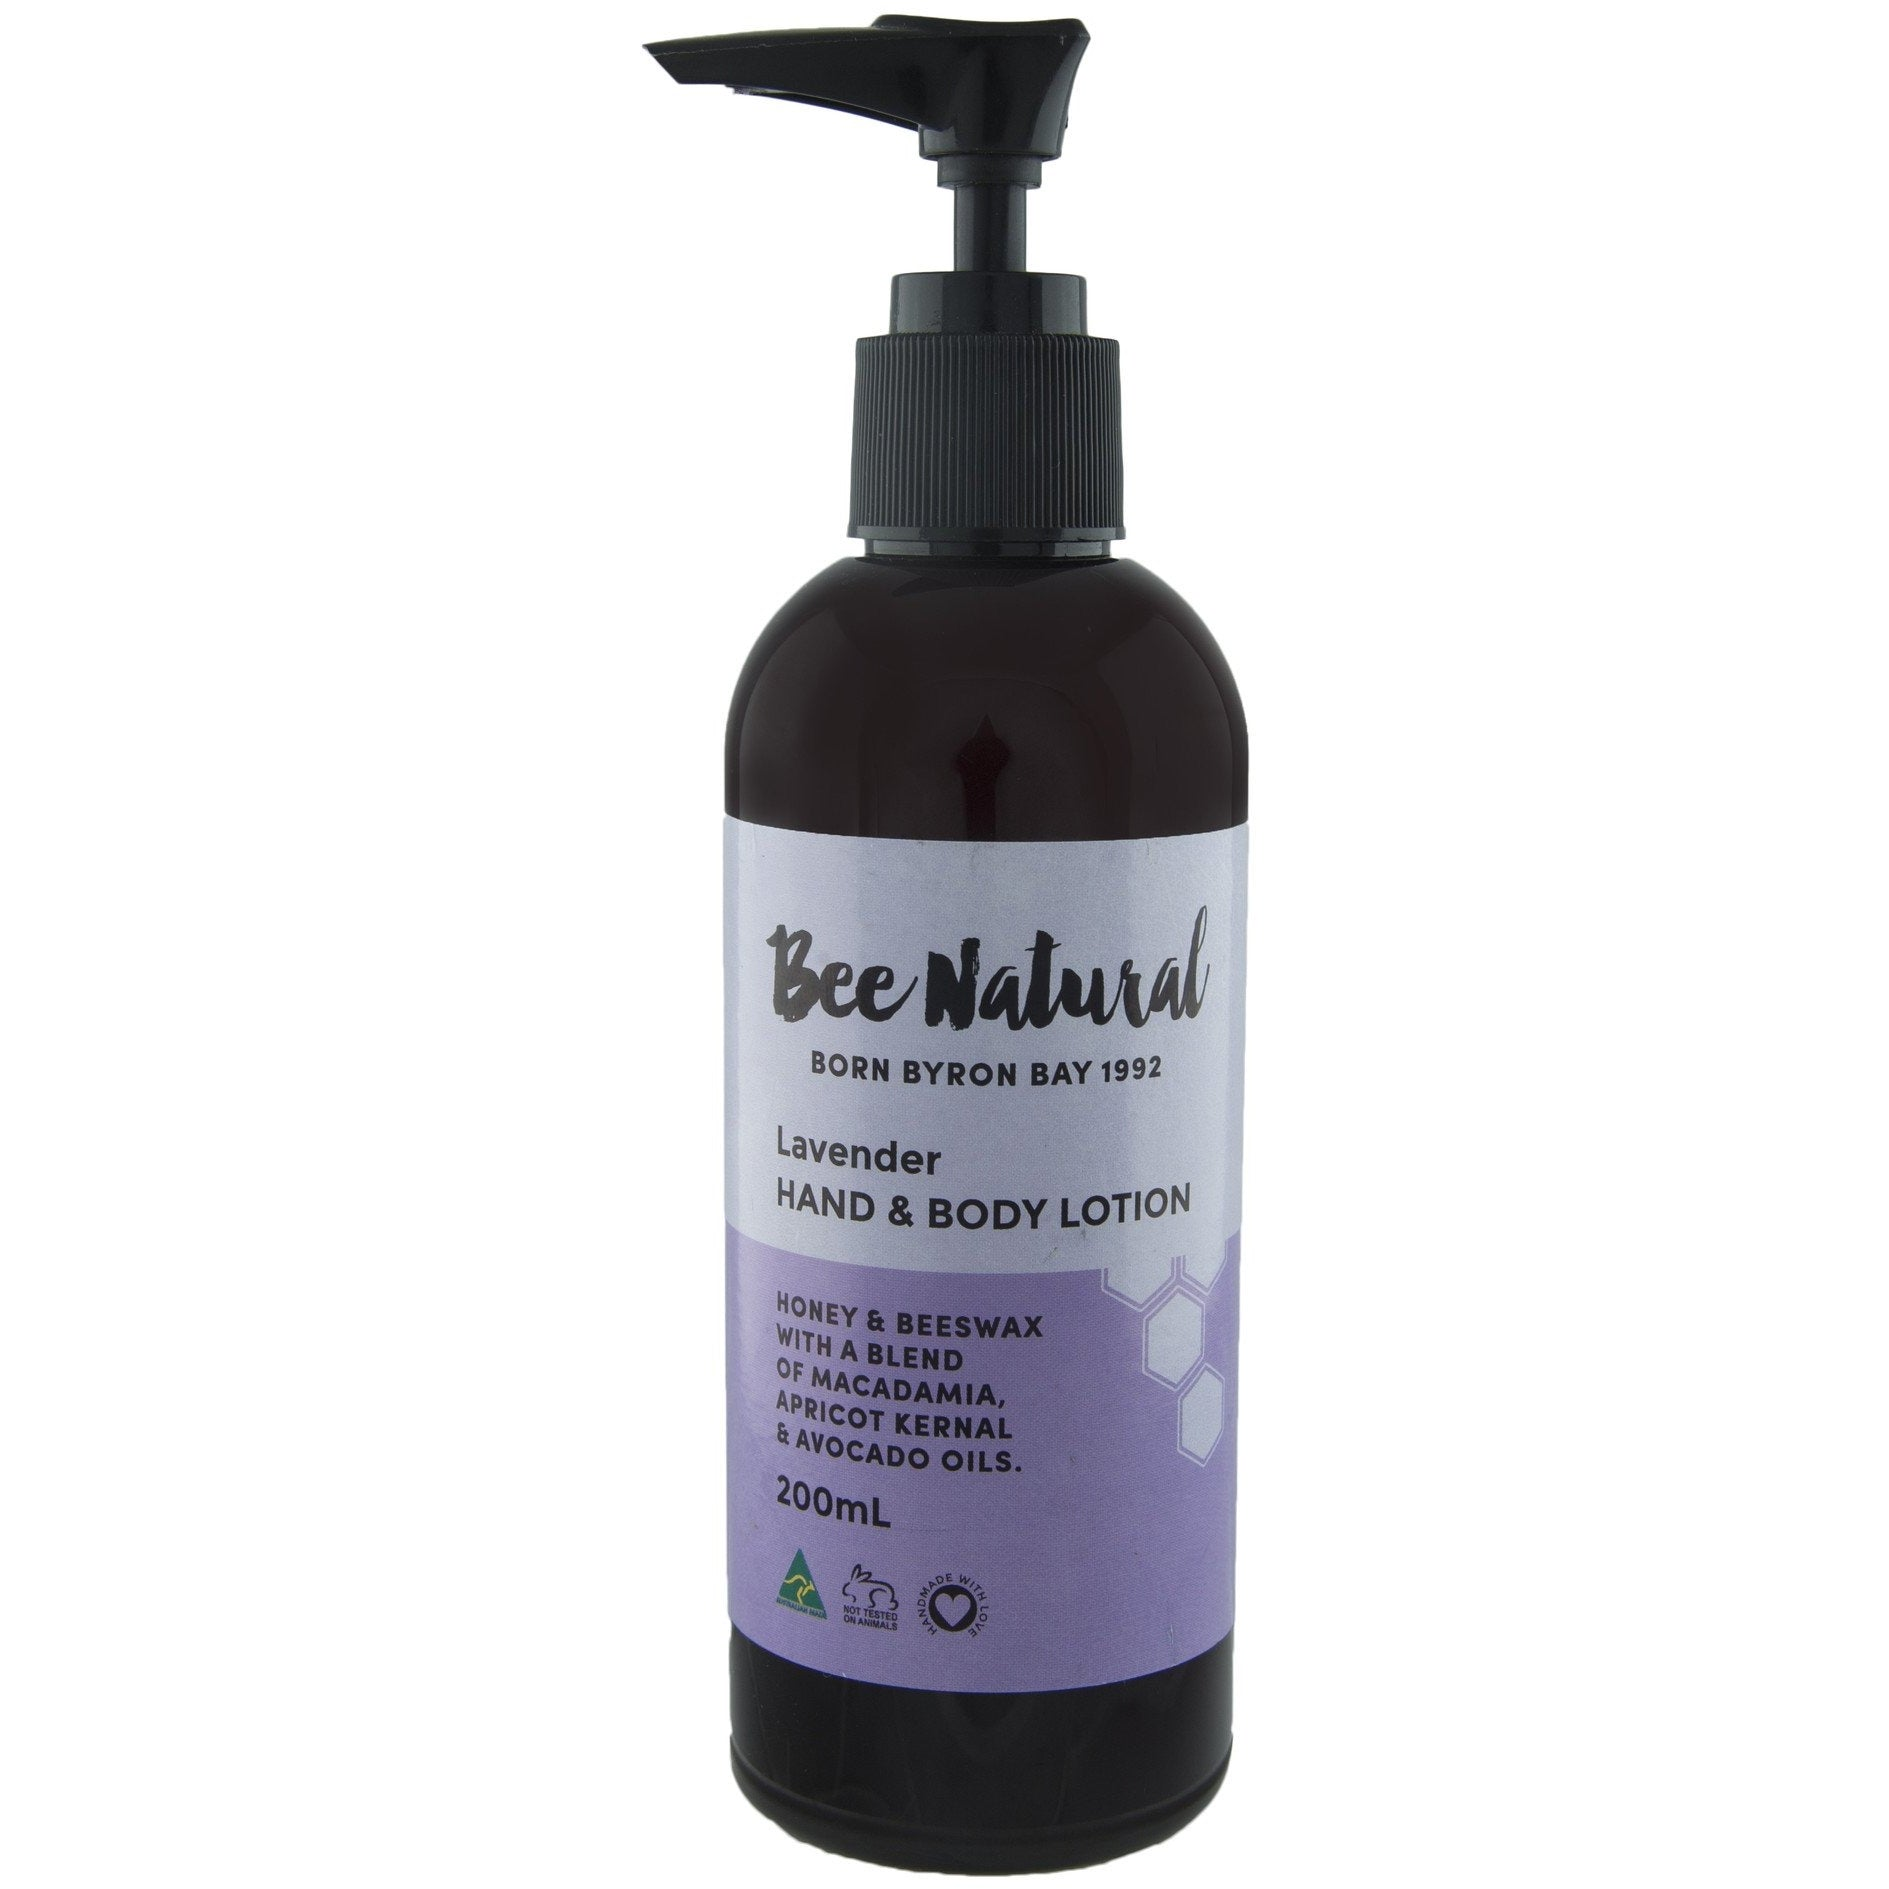 Lavender HAND & BODY LOTION 200mL